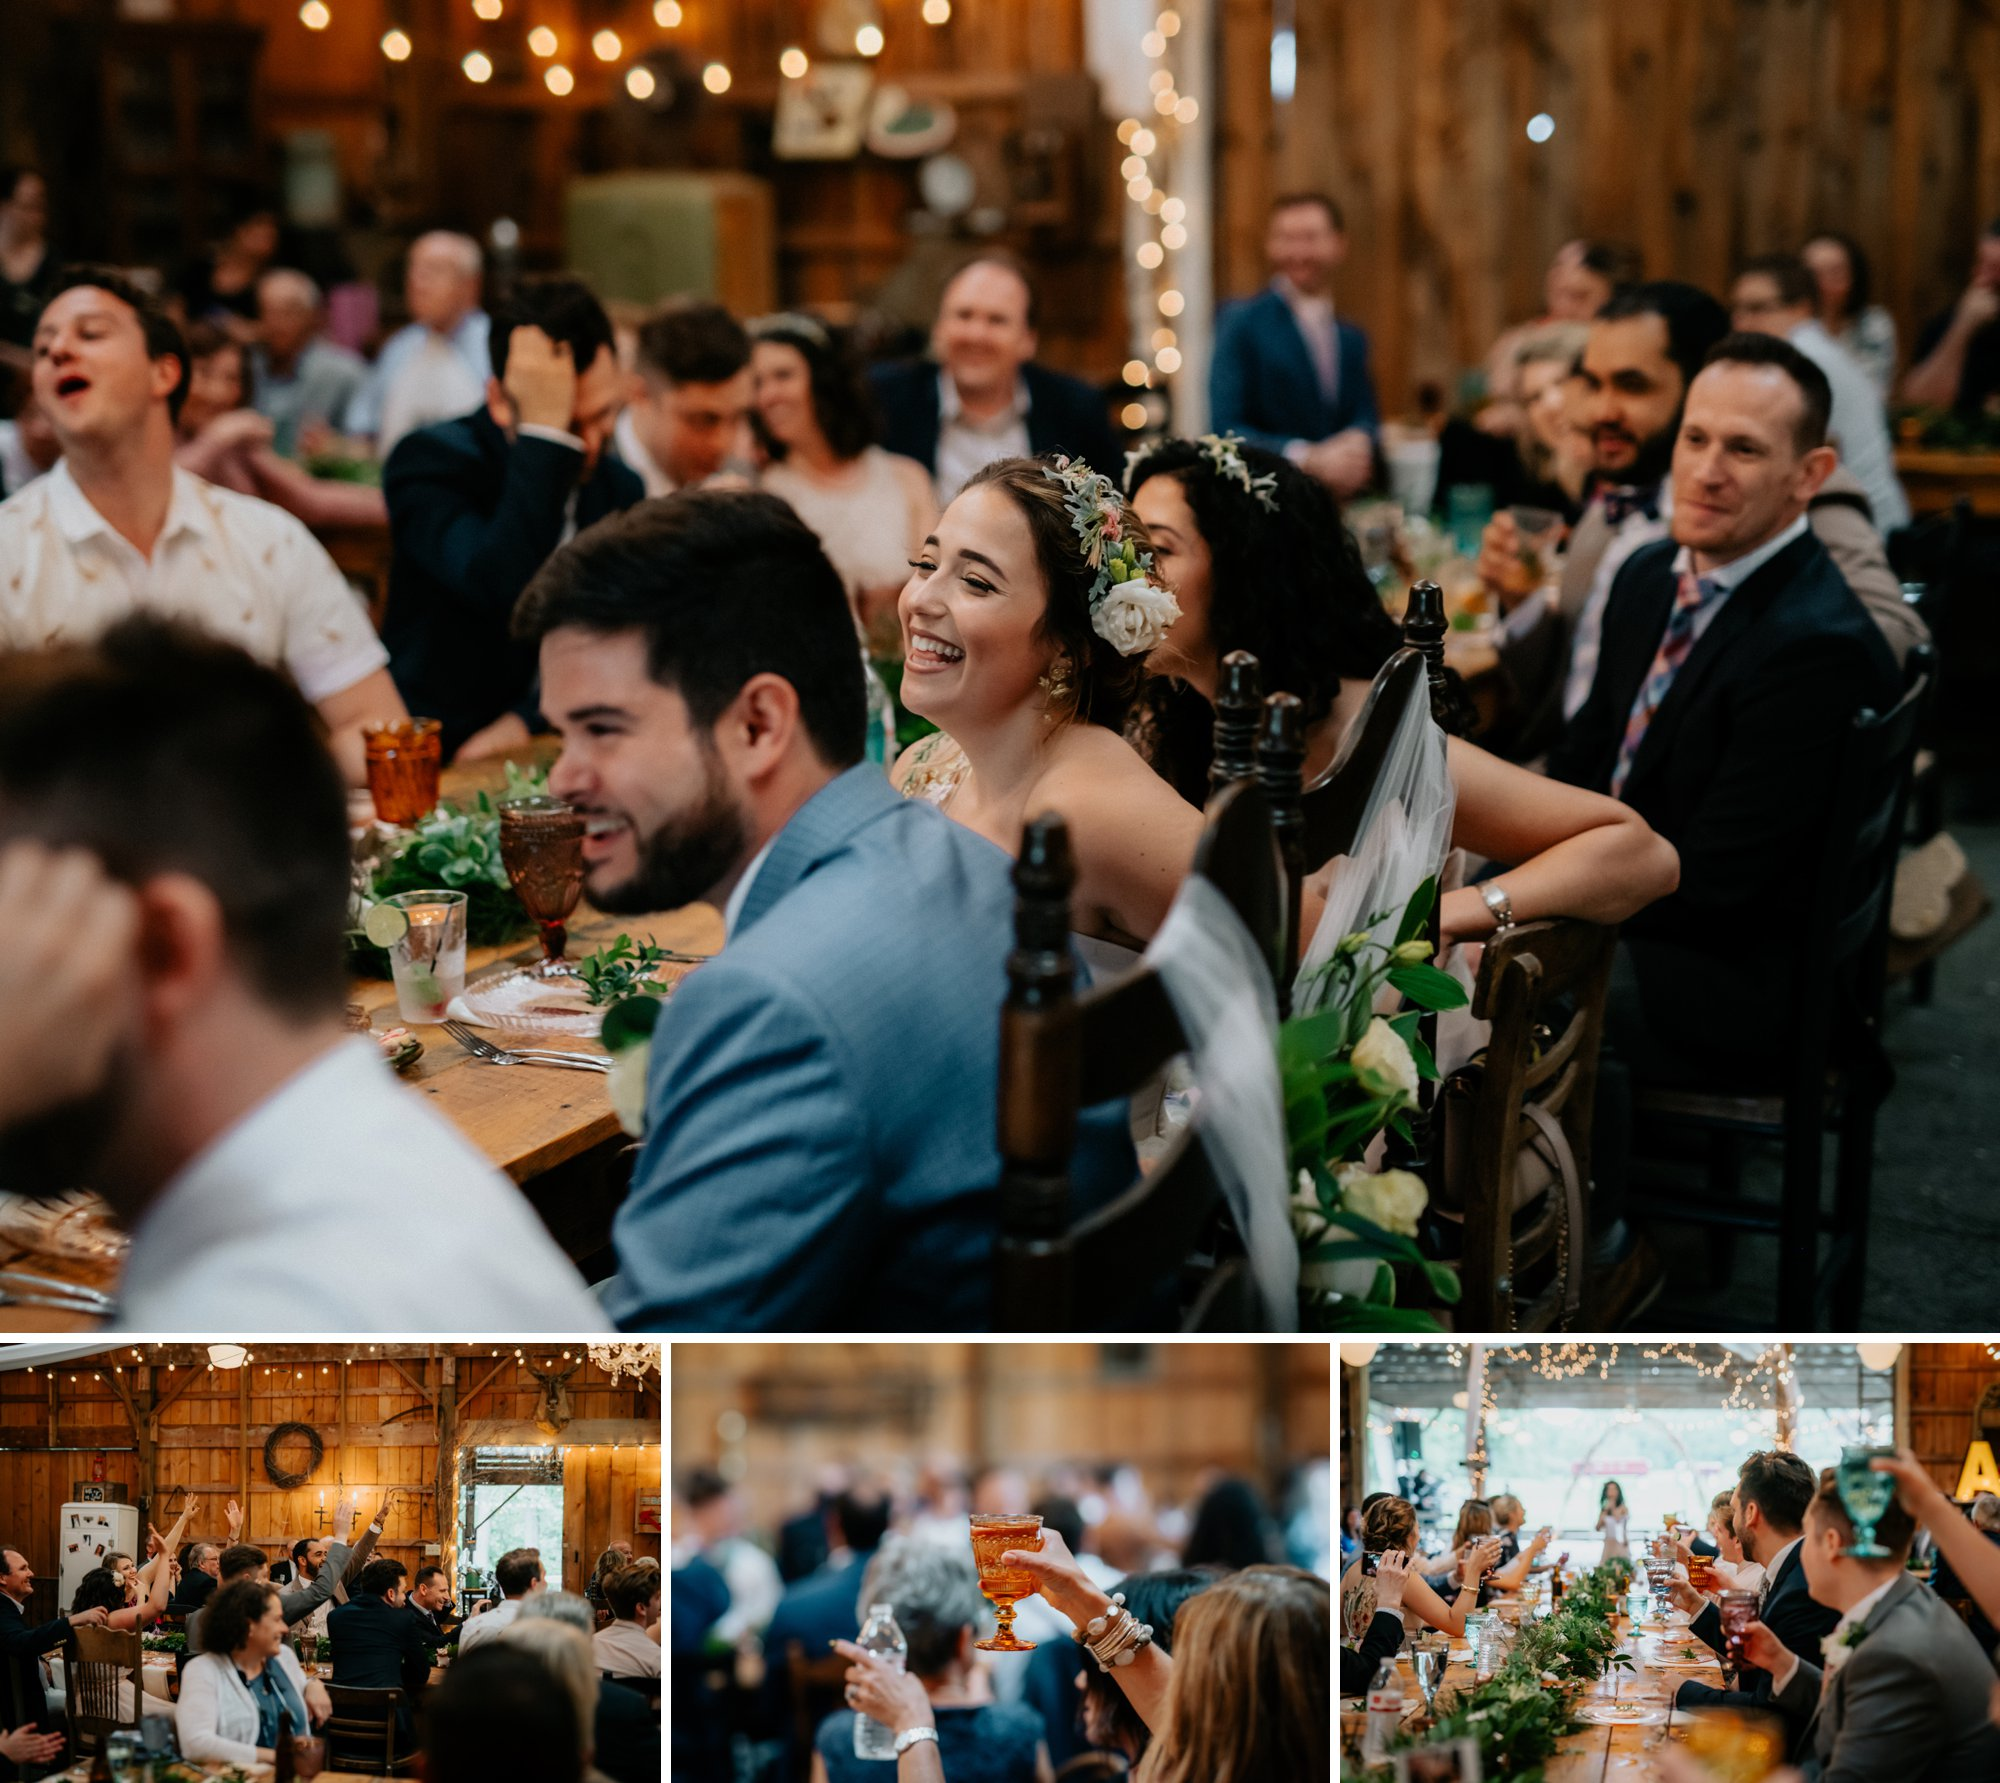 Fiddle Lake Farm Philadelphia Pennsylvania Misty Rustic Wedding with Lush Florals Toasts